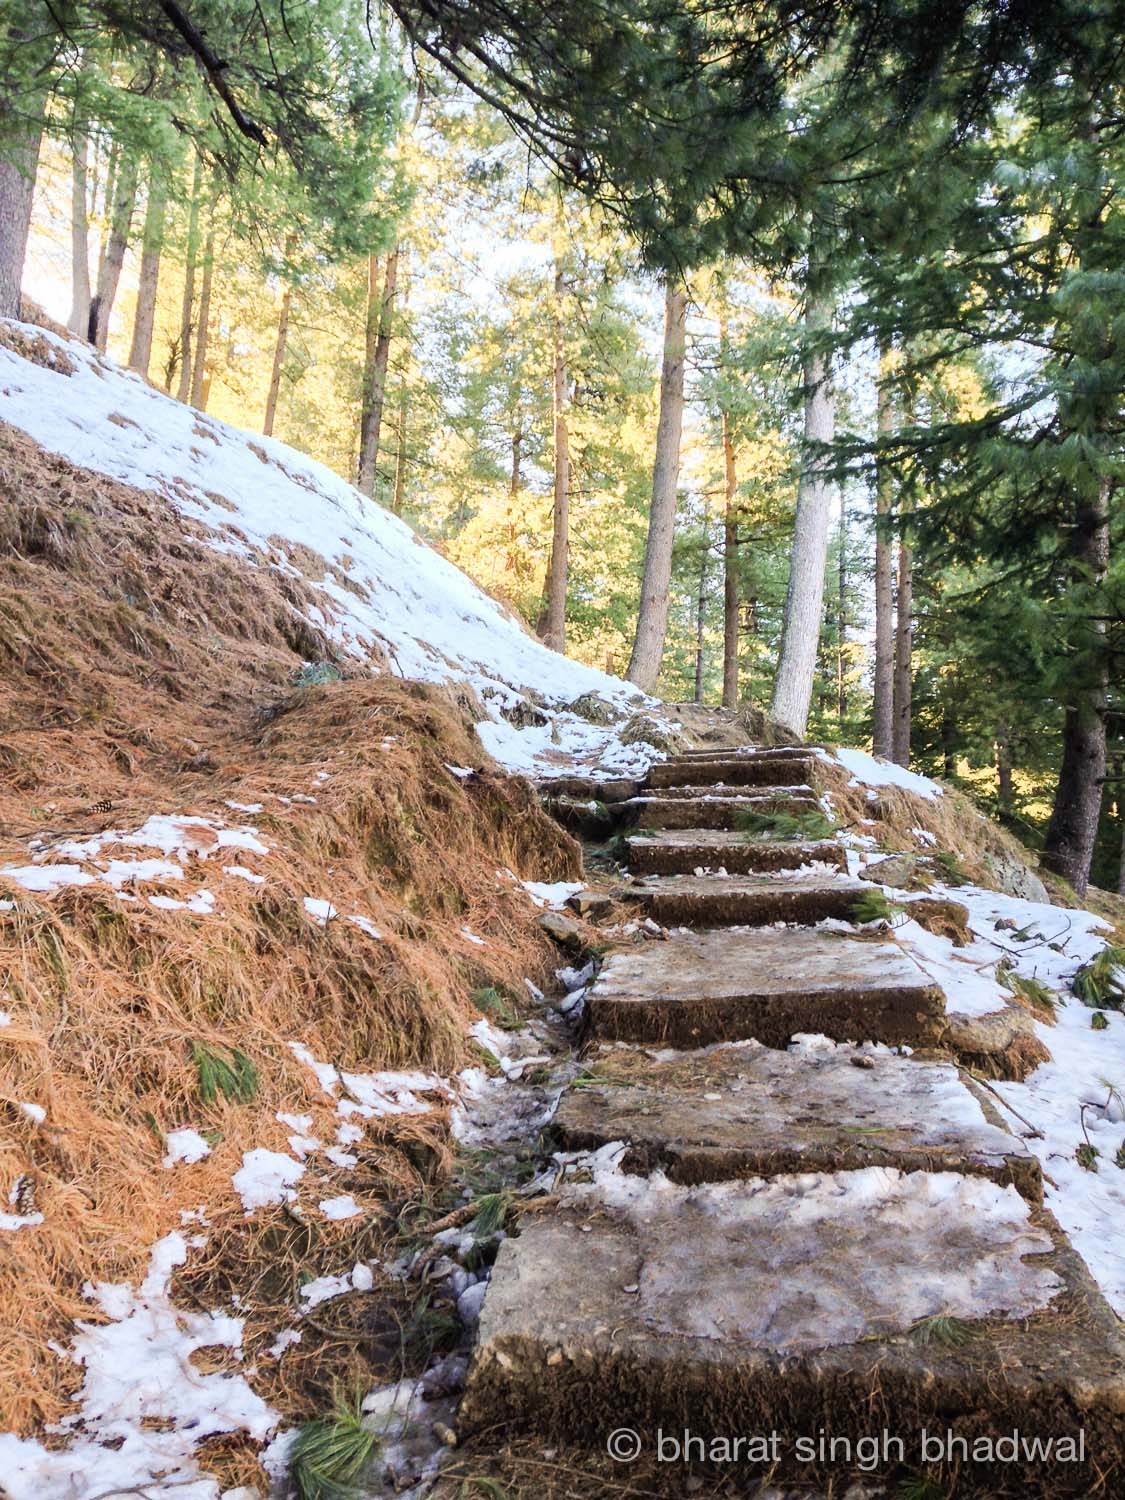 Concrete steps covered with snow and ice. Be careful when descending!